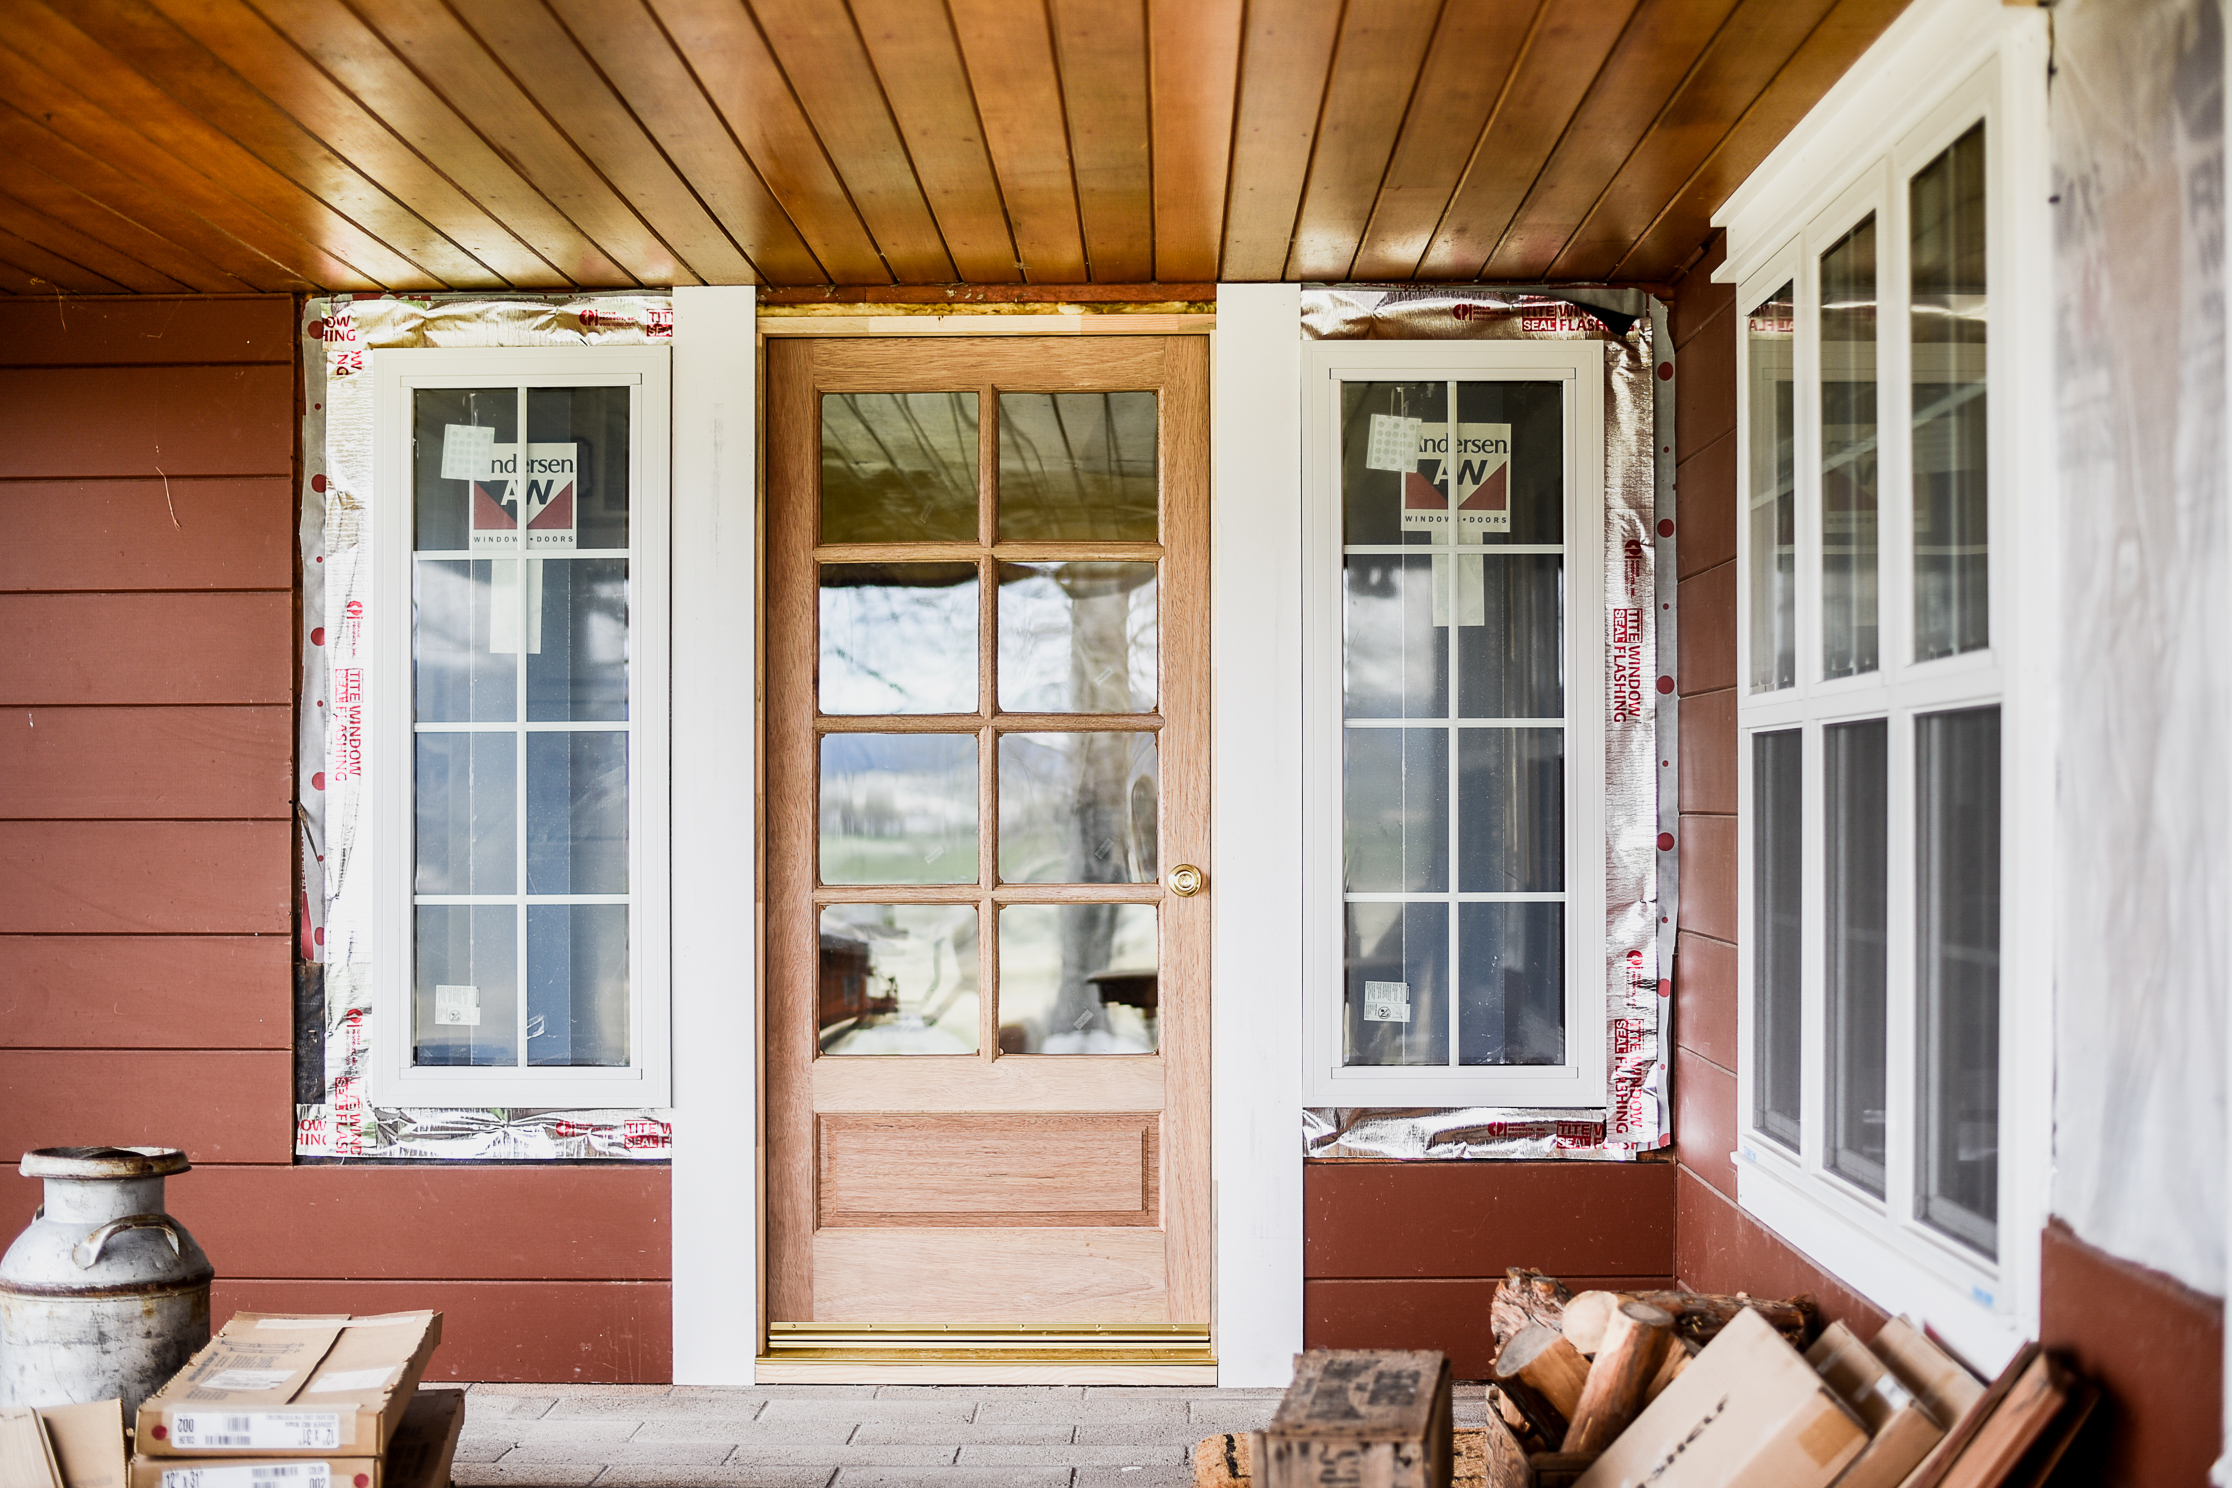 60s ranch white farmhouse renovation | boxwoodavenue.com